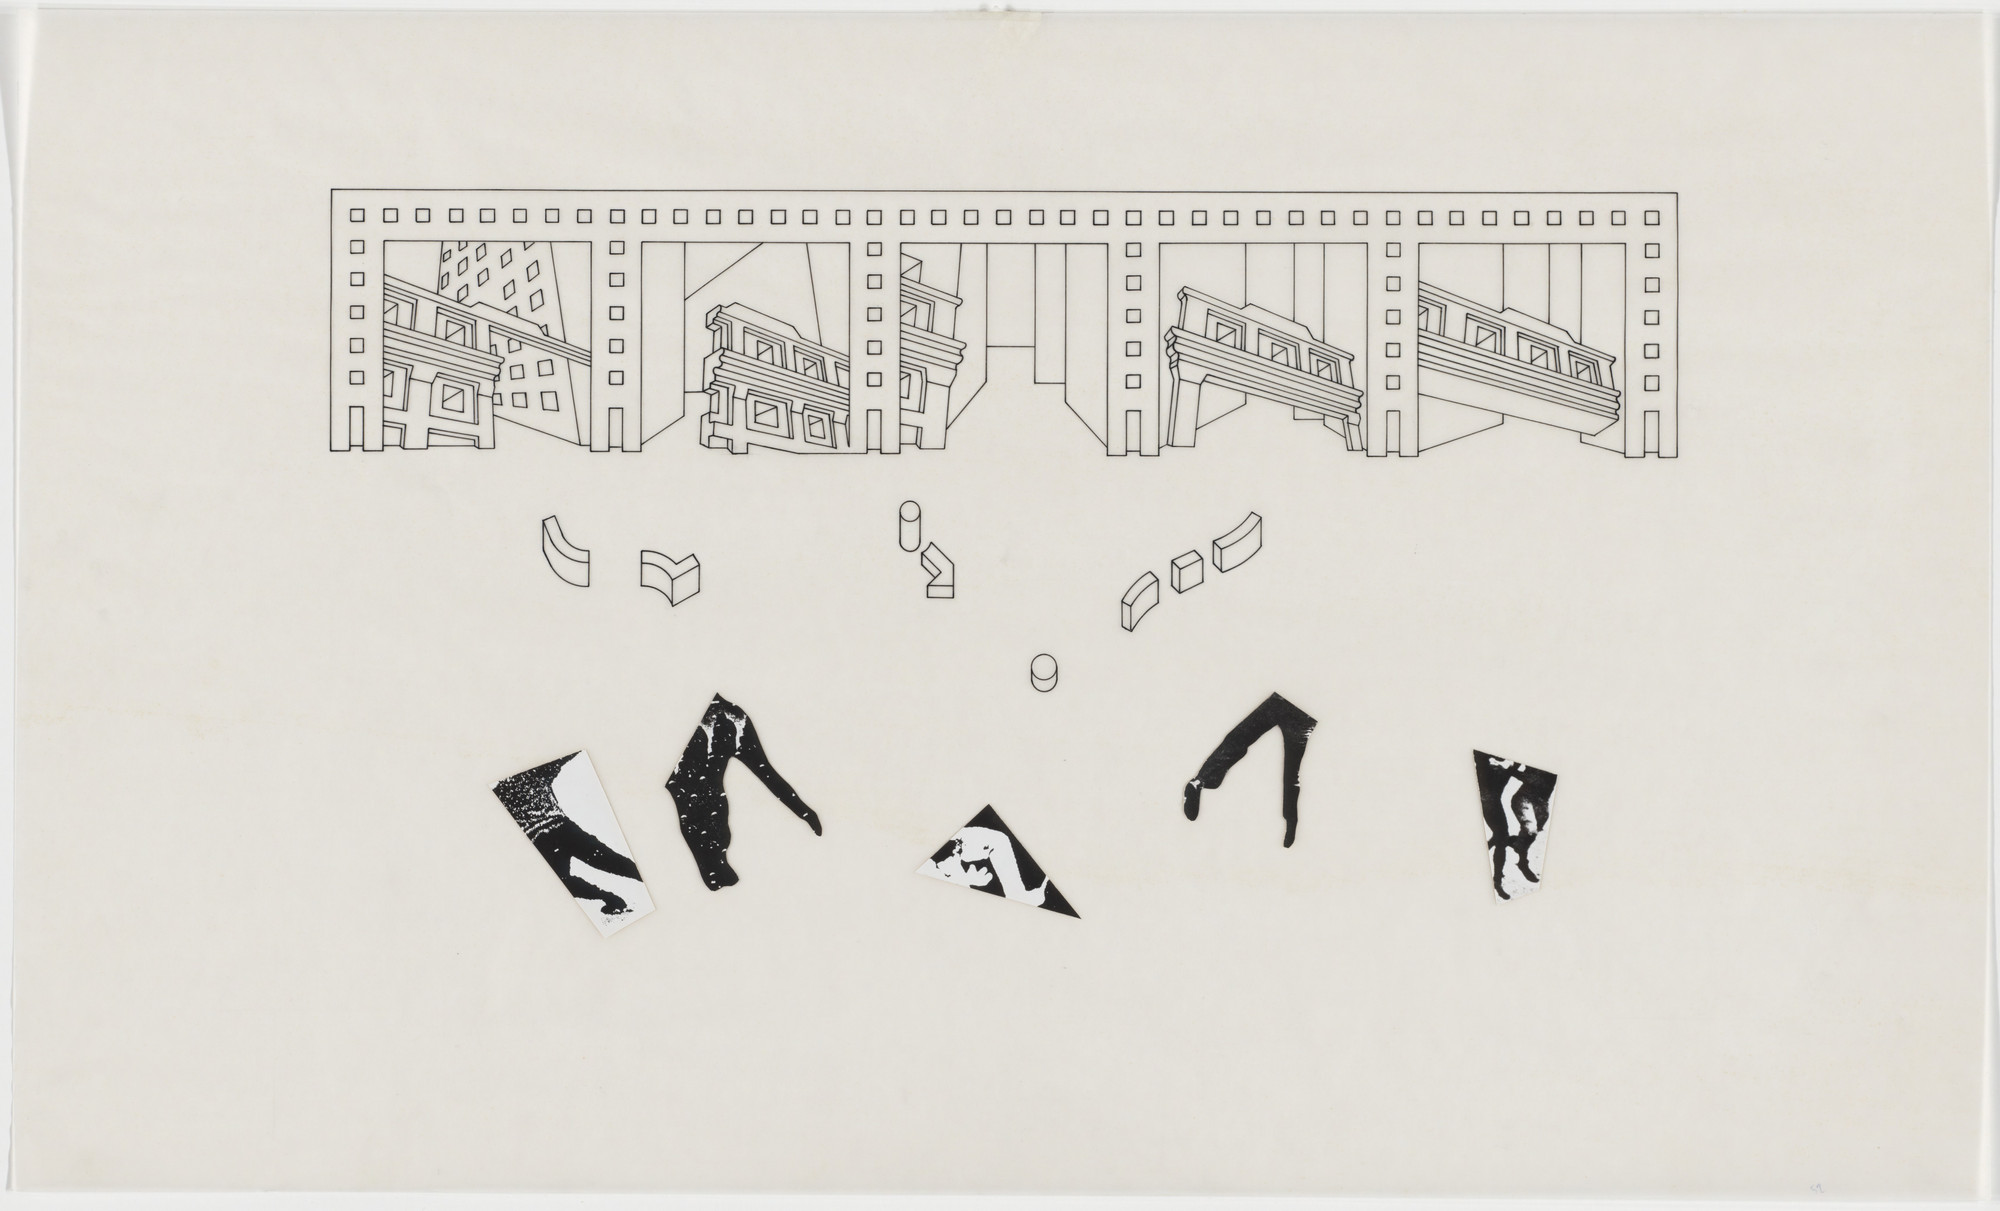 Bernard Tschumi. The Manhattan Transcripts Project, New York, New York, Episode 4: The Block. 1980-81